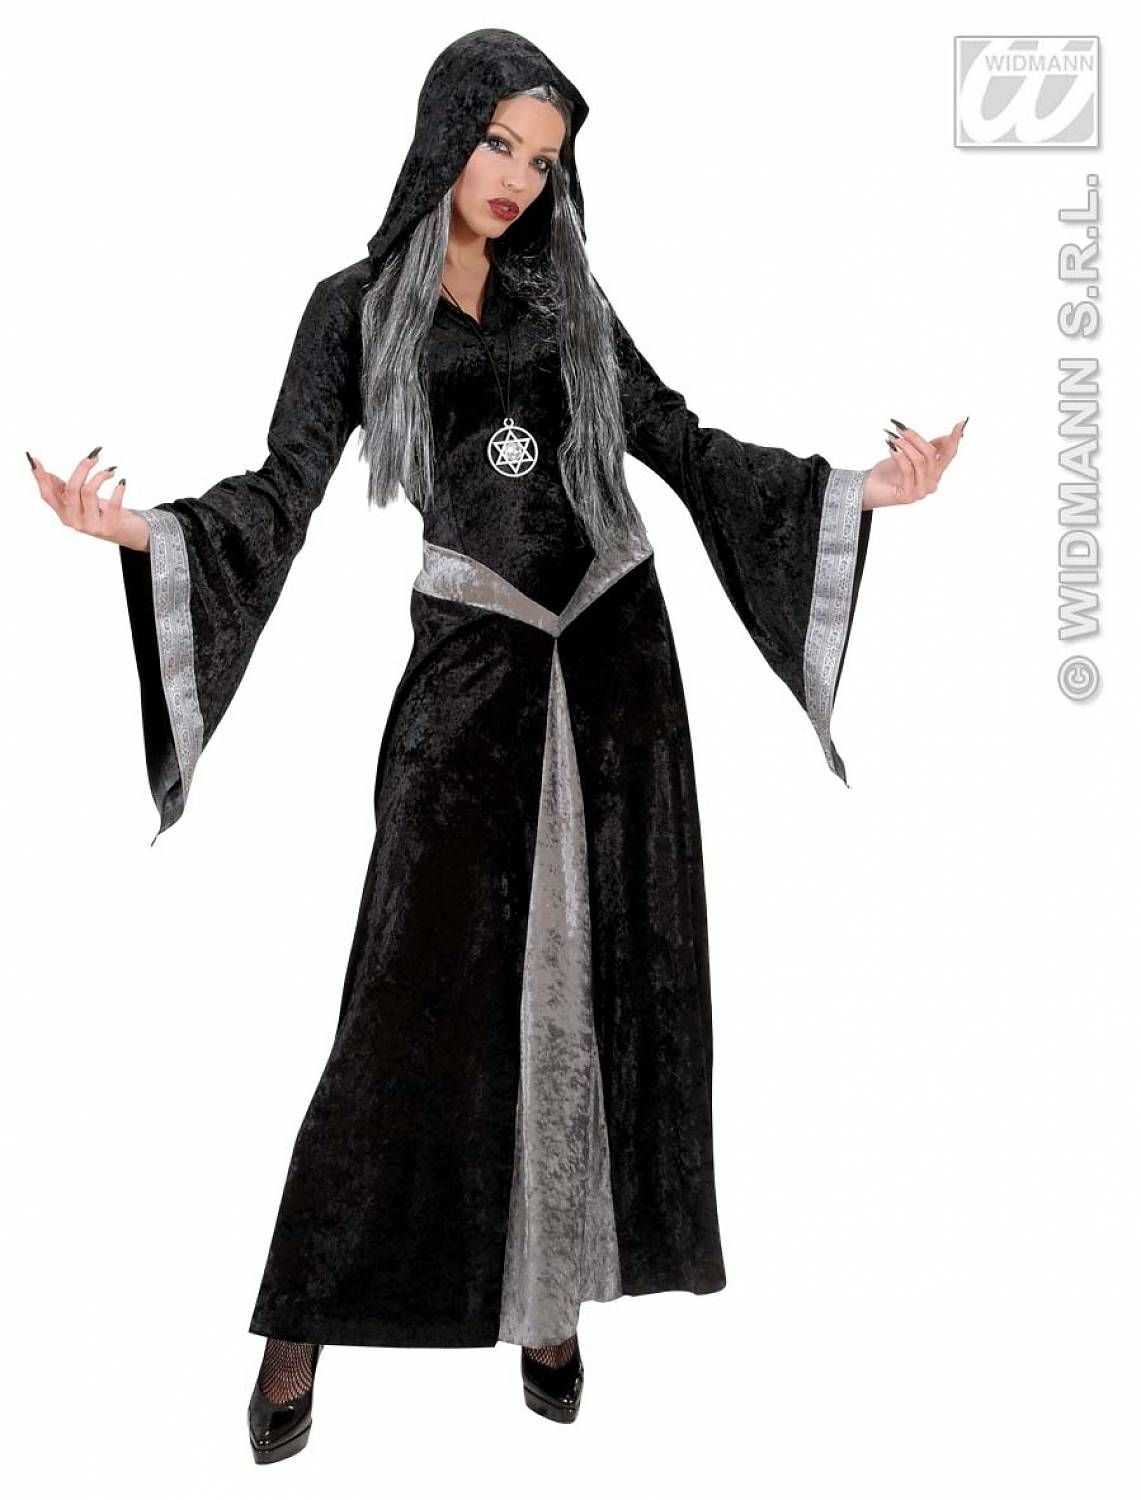 female wizard costumes | Carnival-costumes: Female magician ...